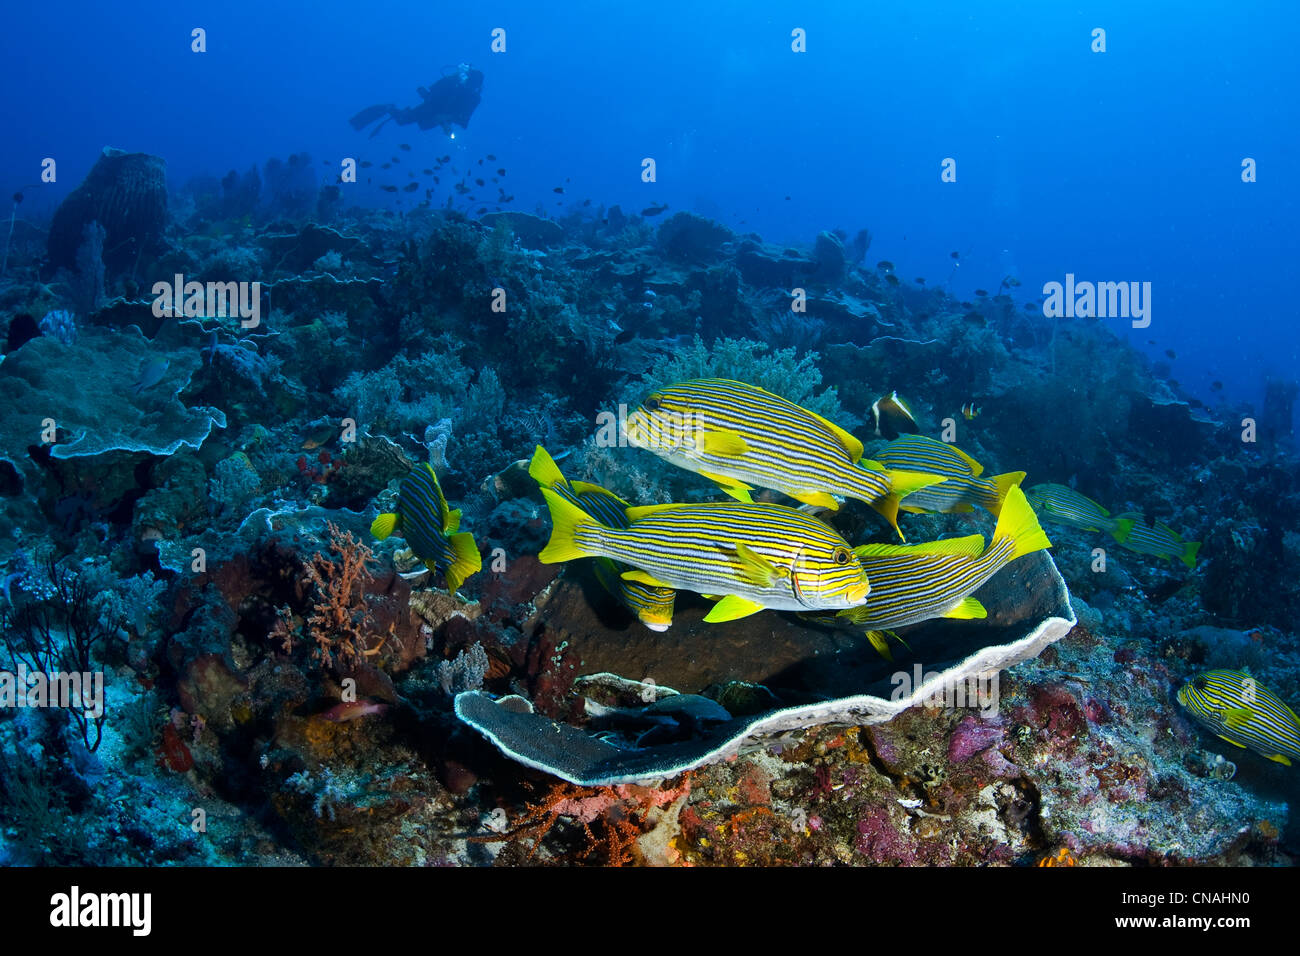 A school of Ribbon sweetlips, Plectorhinchus polytaenia, rest close together during the day and will forage at night - Stock Image